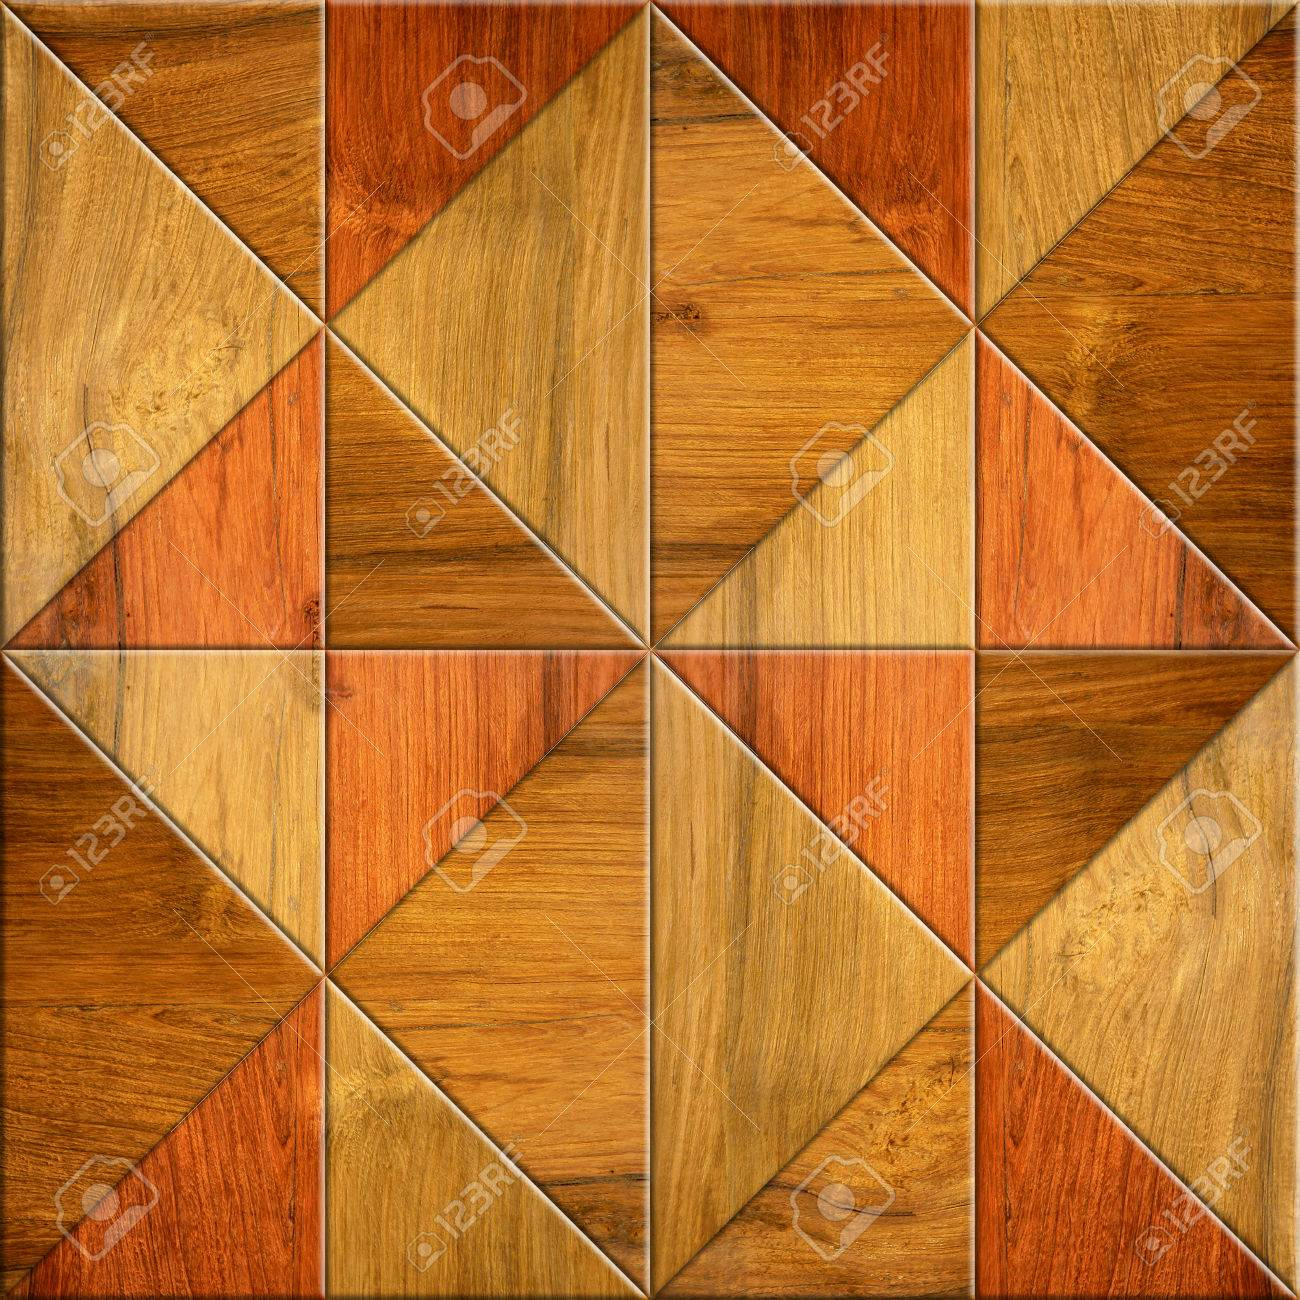 Cherry Wood Texture Seamless Inside Abstract Decorative Texture Seamless Background Cherry Wood Stock Photo 53823890 Decorative Texture Seamless Background Wood